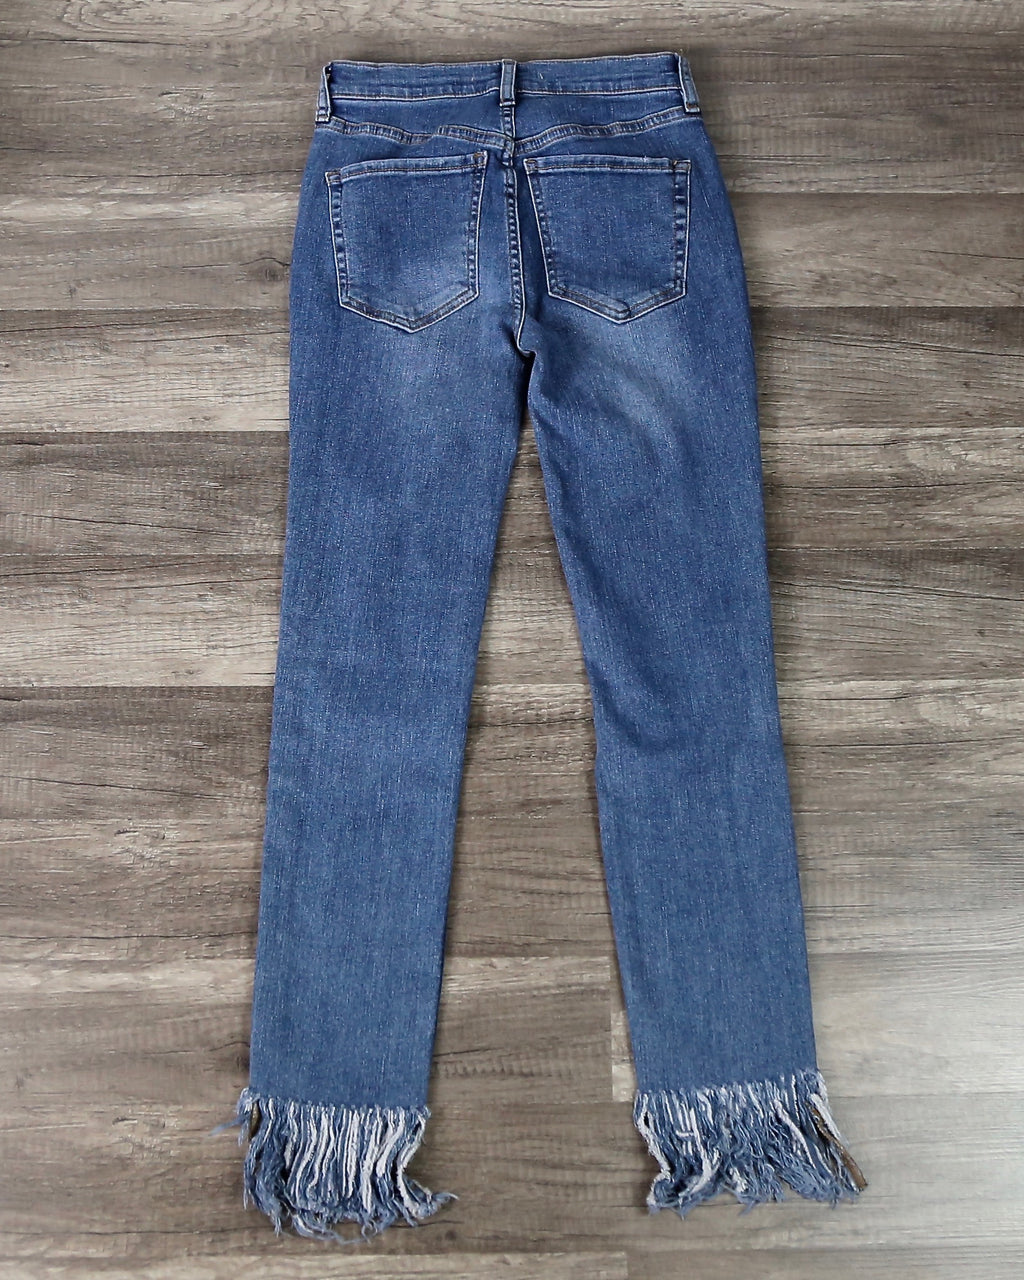 Free People - Great Heights Frayed Skinny Jeans in Worn Indigo